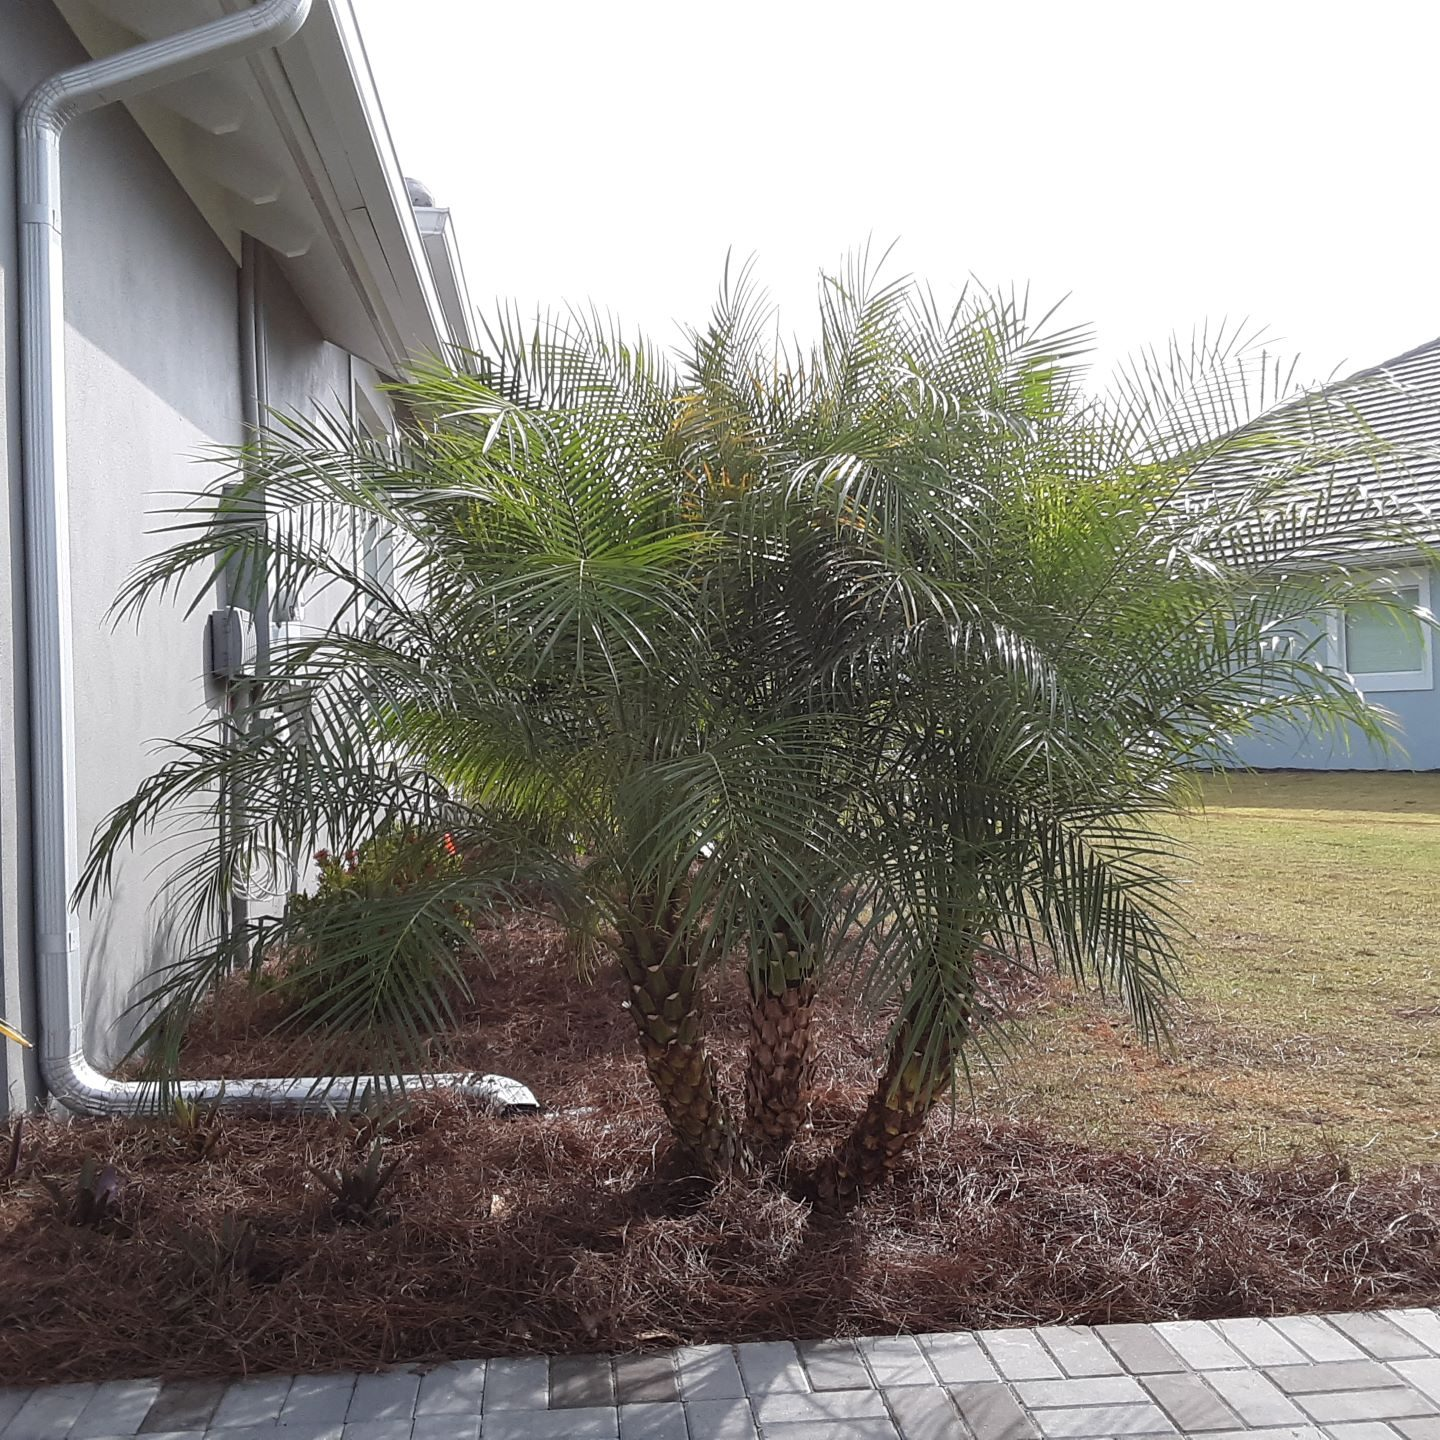 Pygmy Date Palm Robellini 5-6 ft. Cost